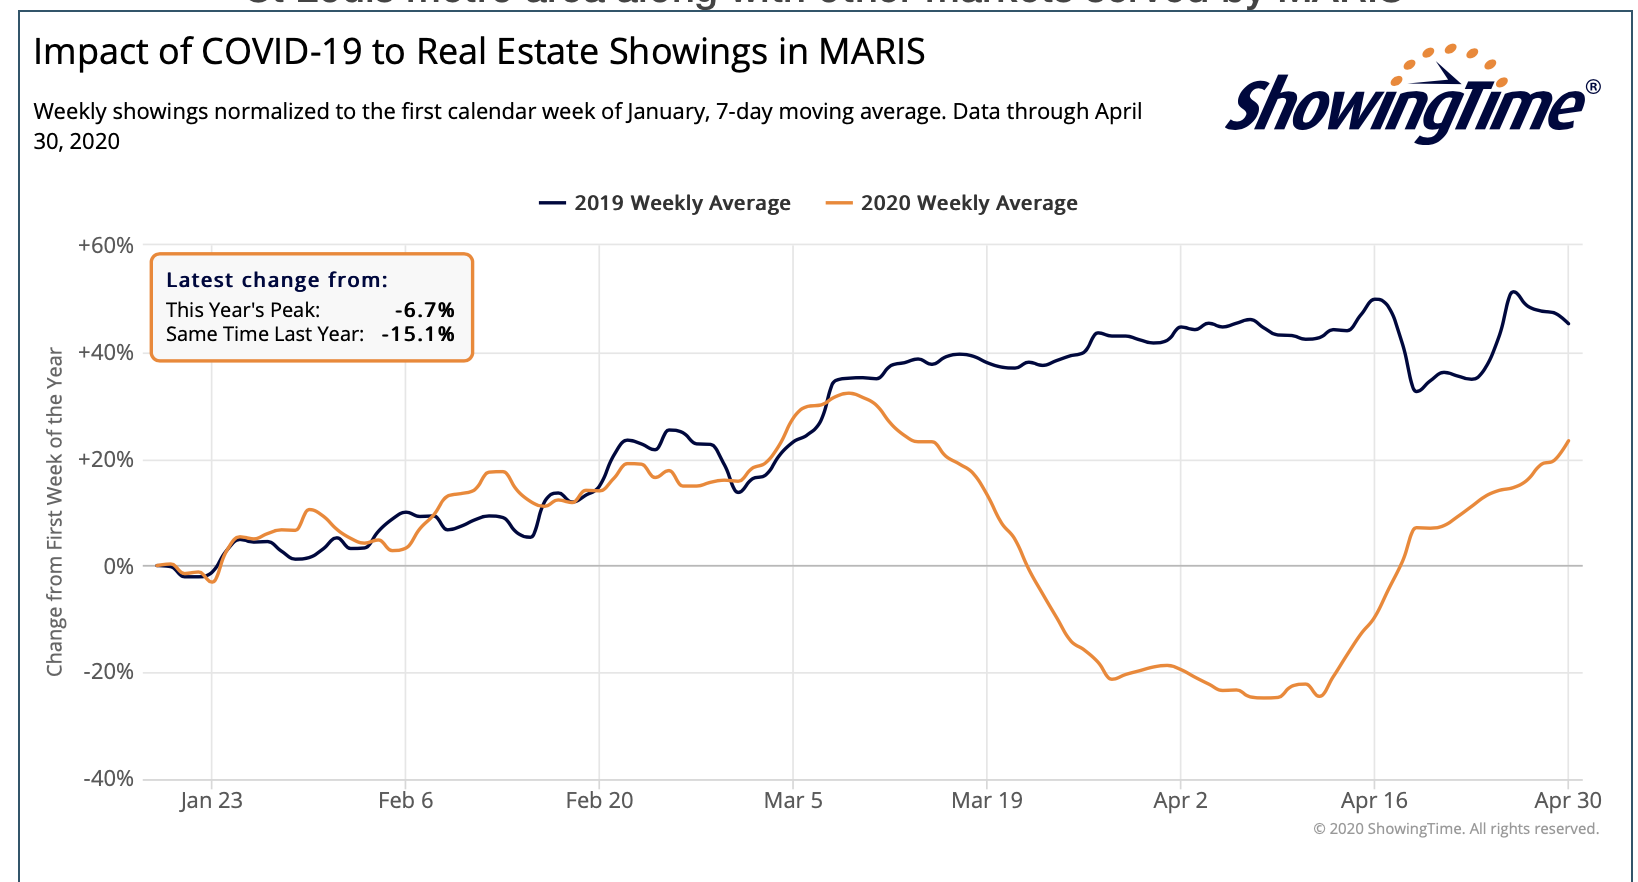 St Louis metro area along with other markets served by MARIS